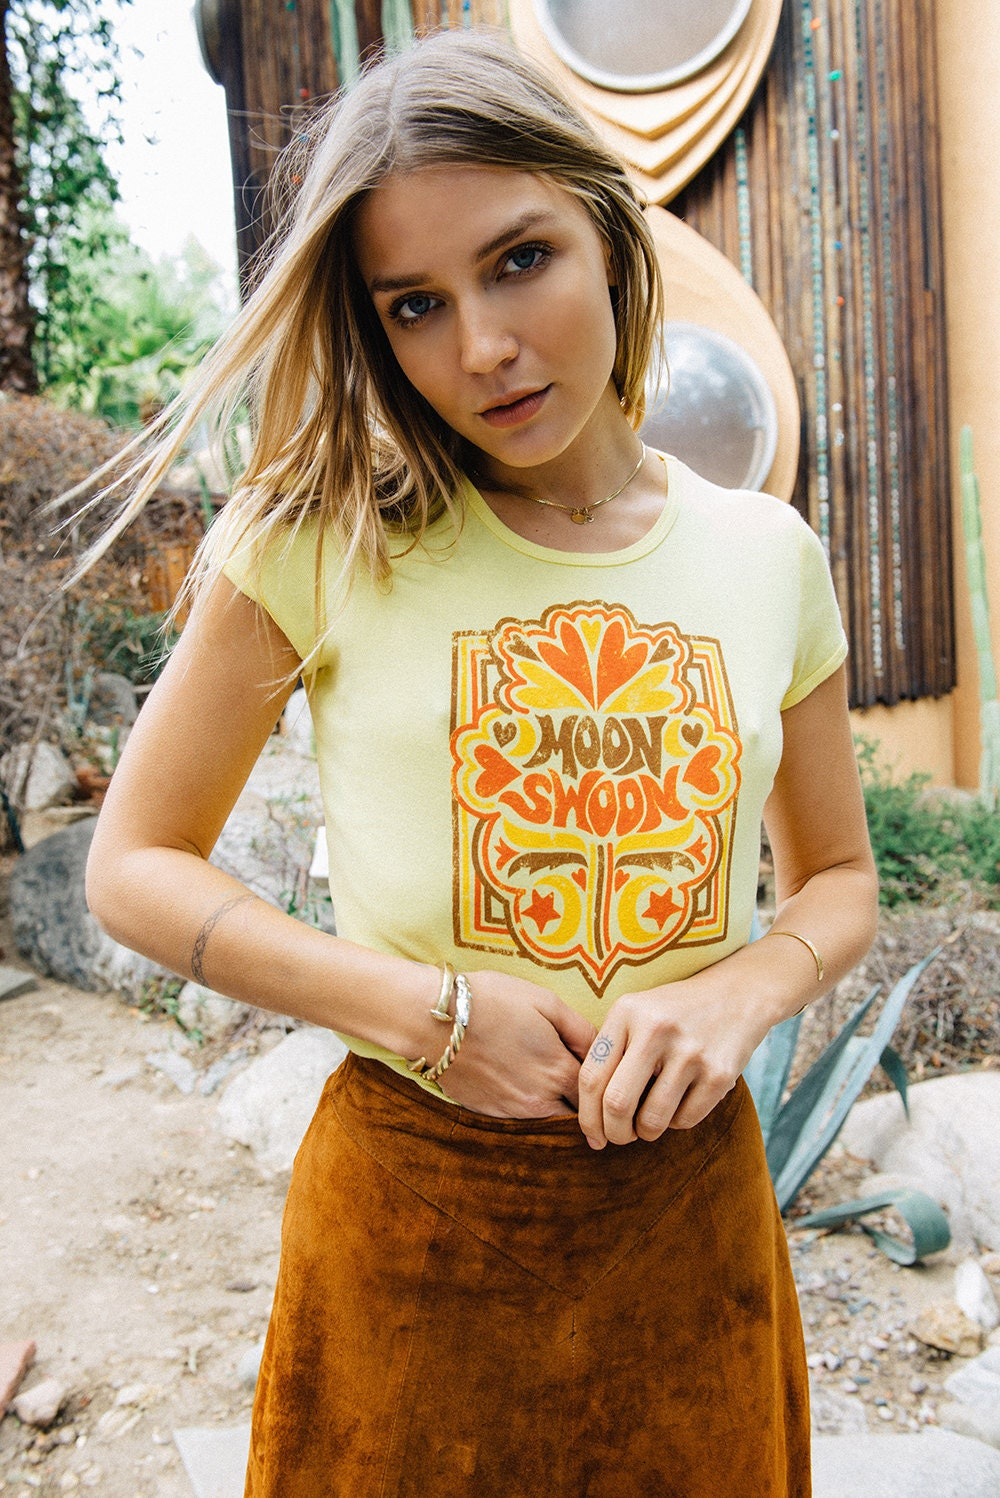 You've searched for Vintage Women's T-Shirts! Etsy has thousands of unique options to choose from, like handmade goods, vintage finds, and one-of-a-kind gifts. Our global marketplace of sellers can help you find extraordinary items at any price range.